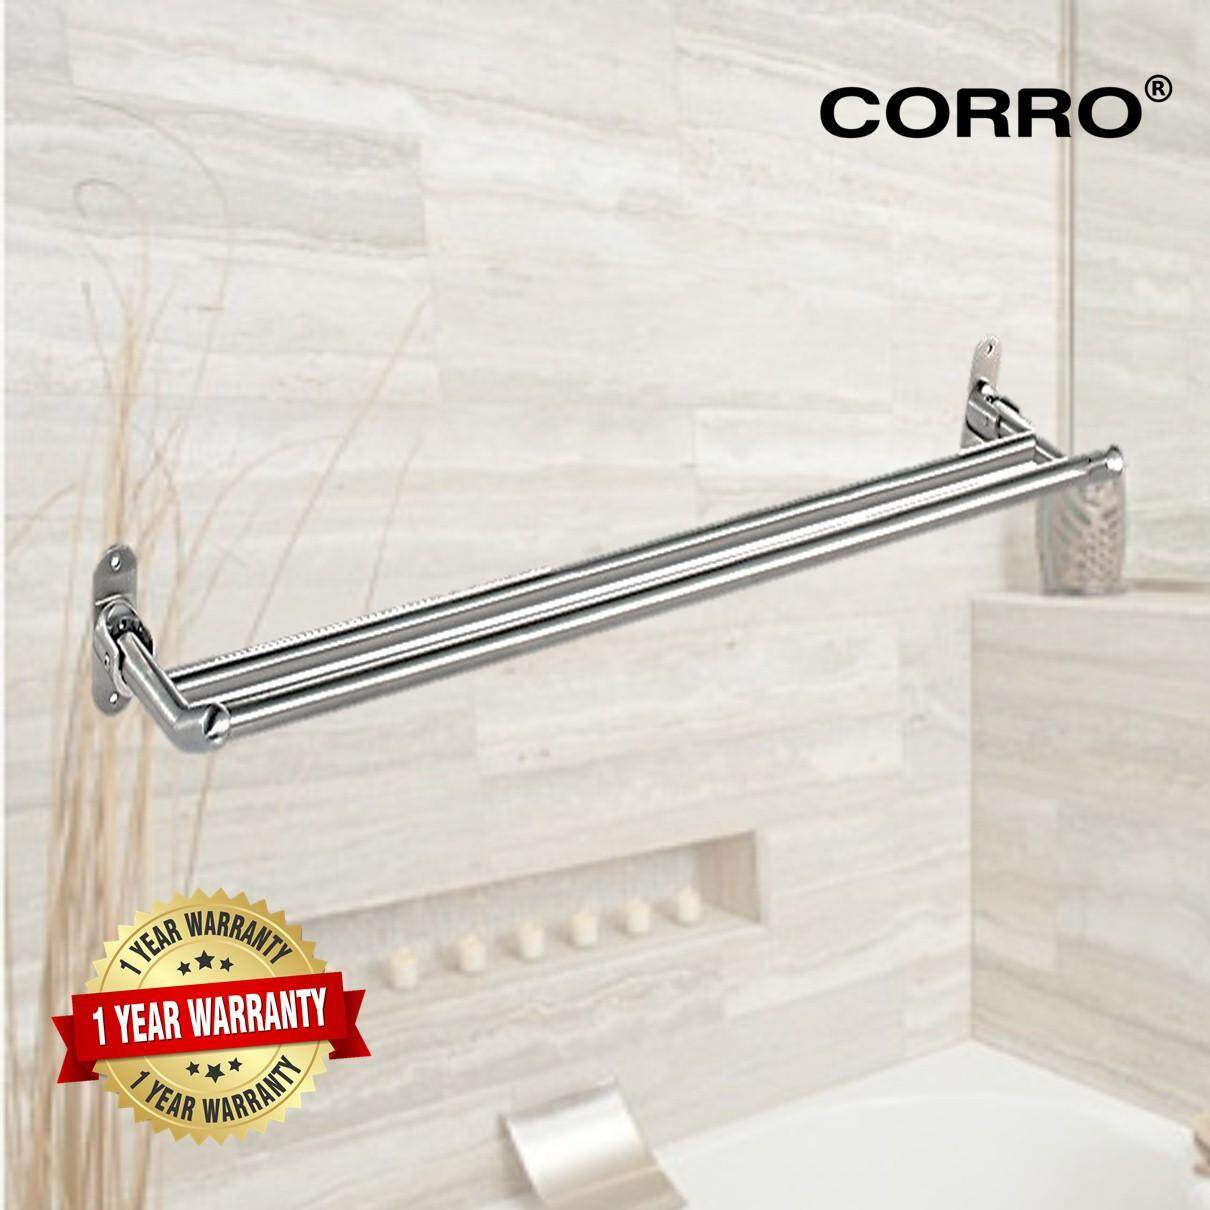 [CORRO High Quality SUS304 Stainless Steel Foldable Towel Rack]